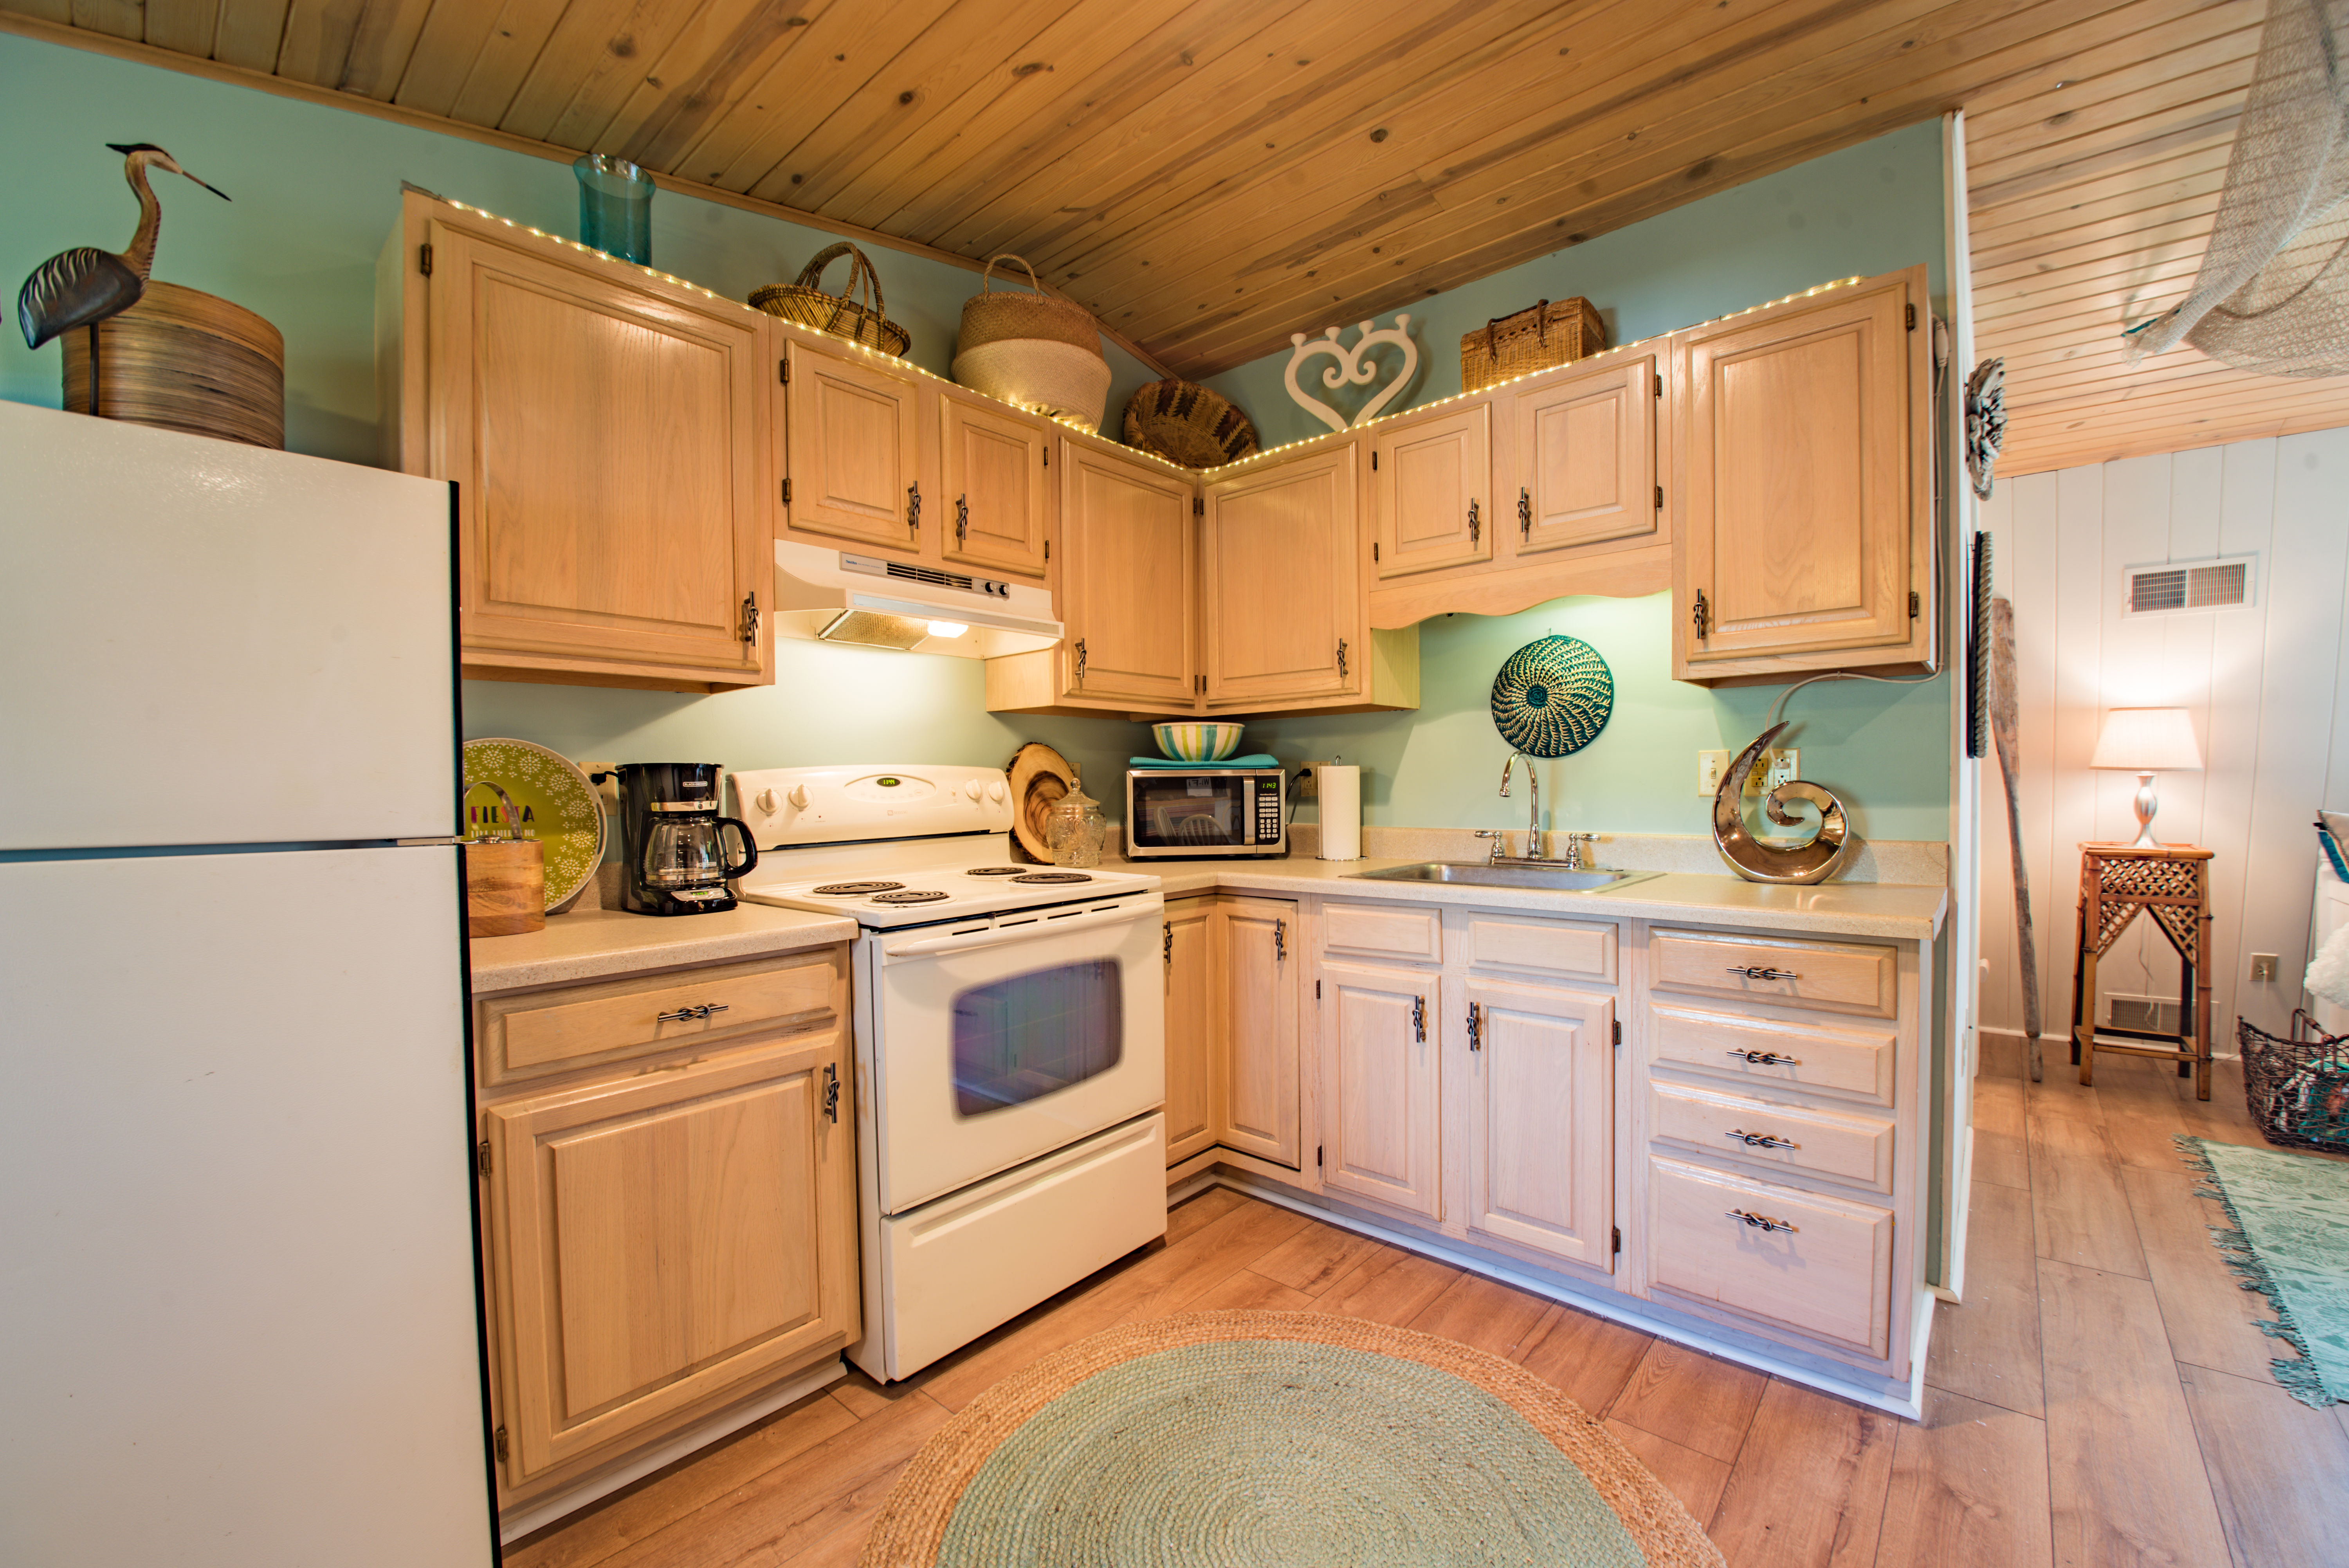 Fully equipped kitchen with coffee maker, oven, toaster, and refrigerator/freezer.